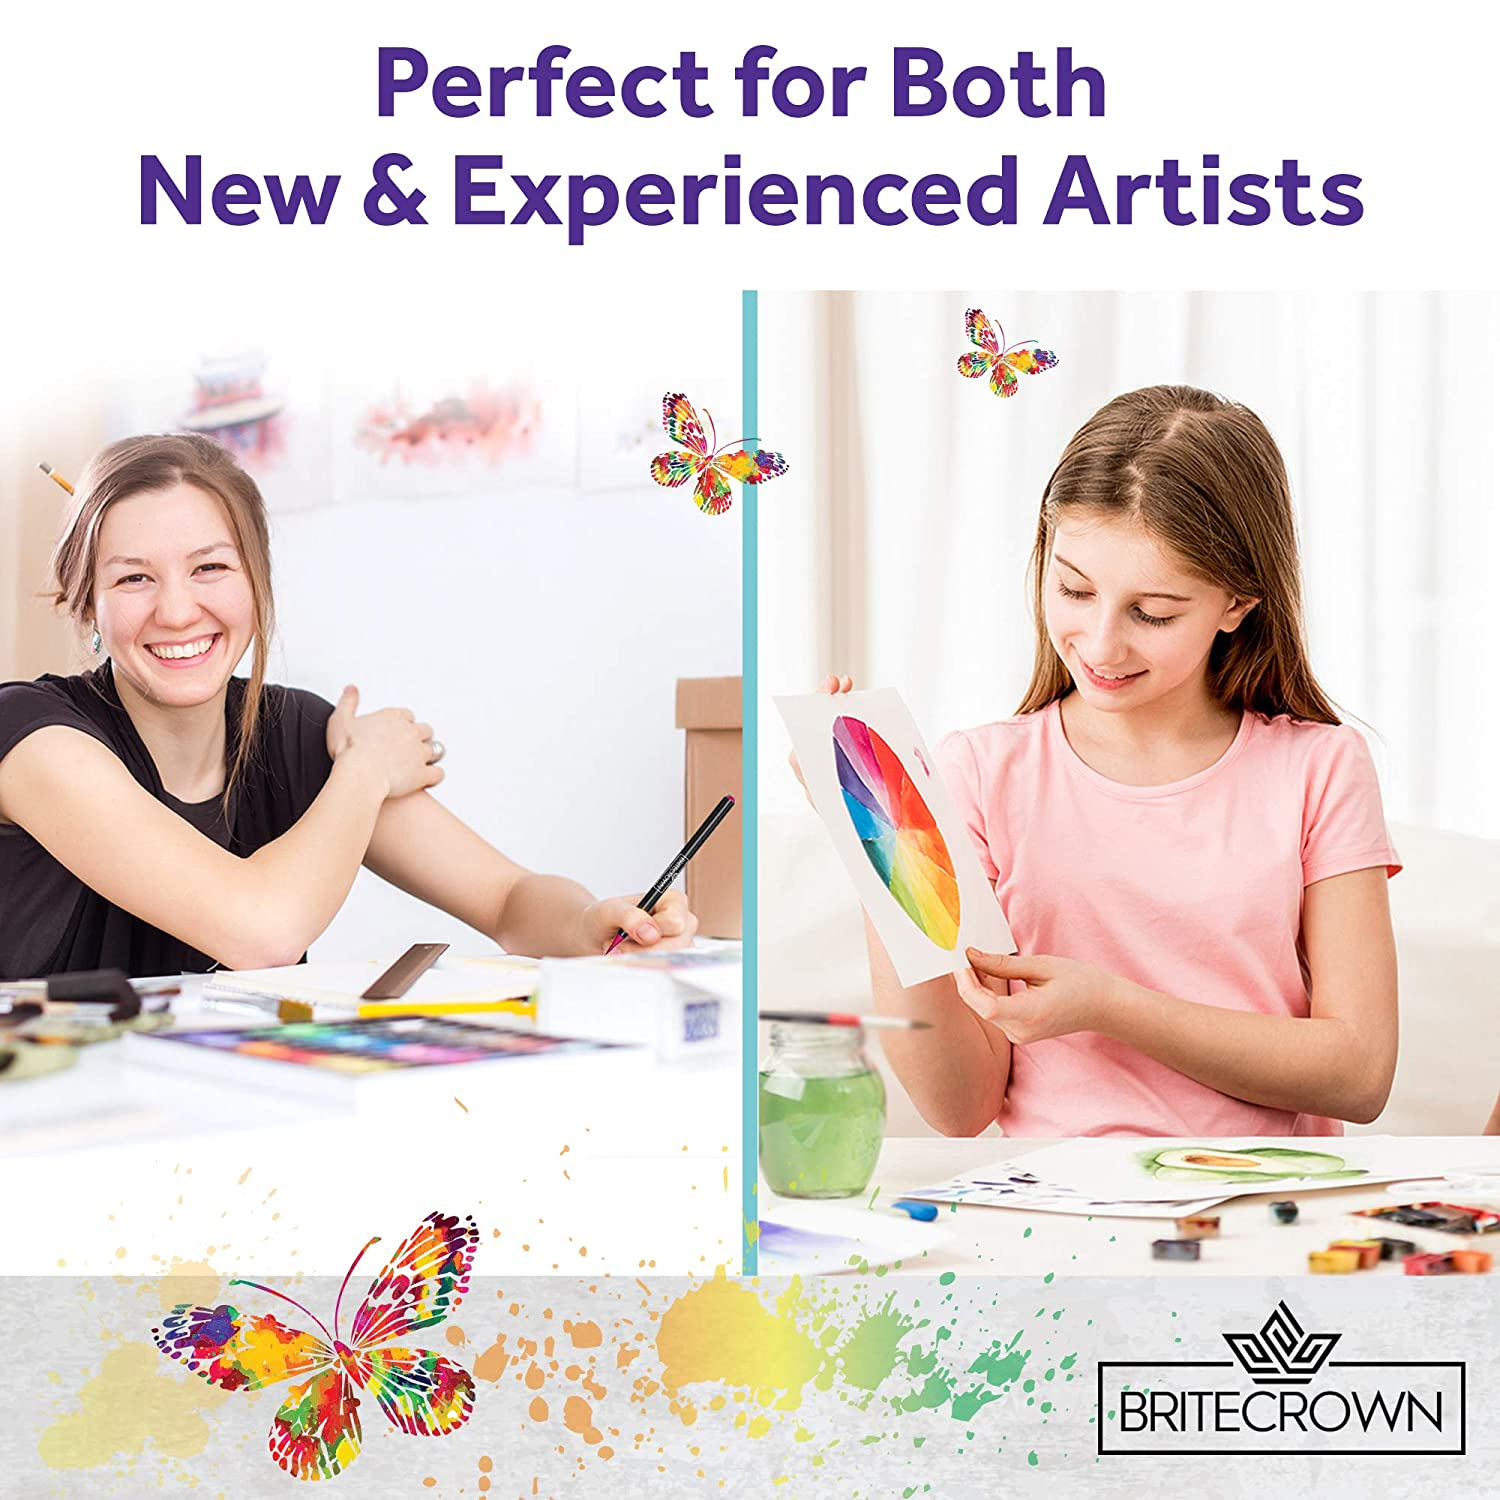 Brite Crown Watercolor Paper Pad Cold Press Texture Wet Media /& Mixed Media Artists Bright White 30 Sheets Teens and Adult Painters 140lb//300gsm 9x12 Acid Free Watercolor Paper for Kids